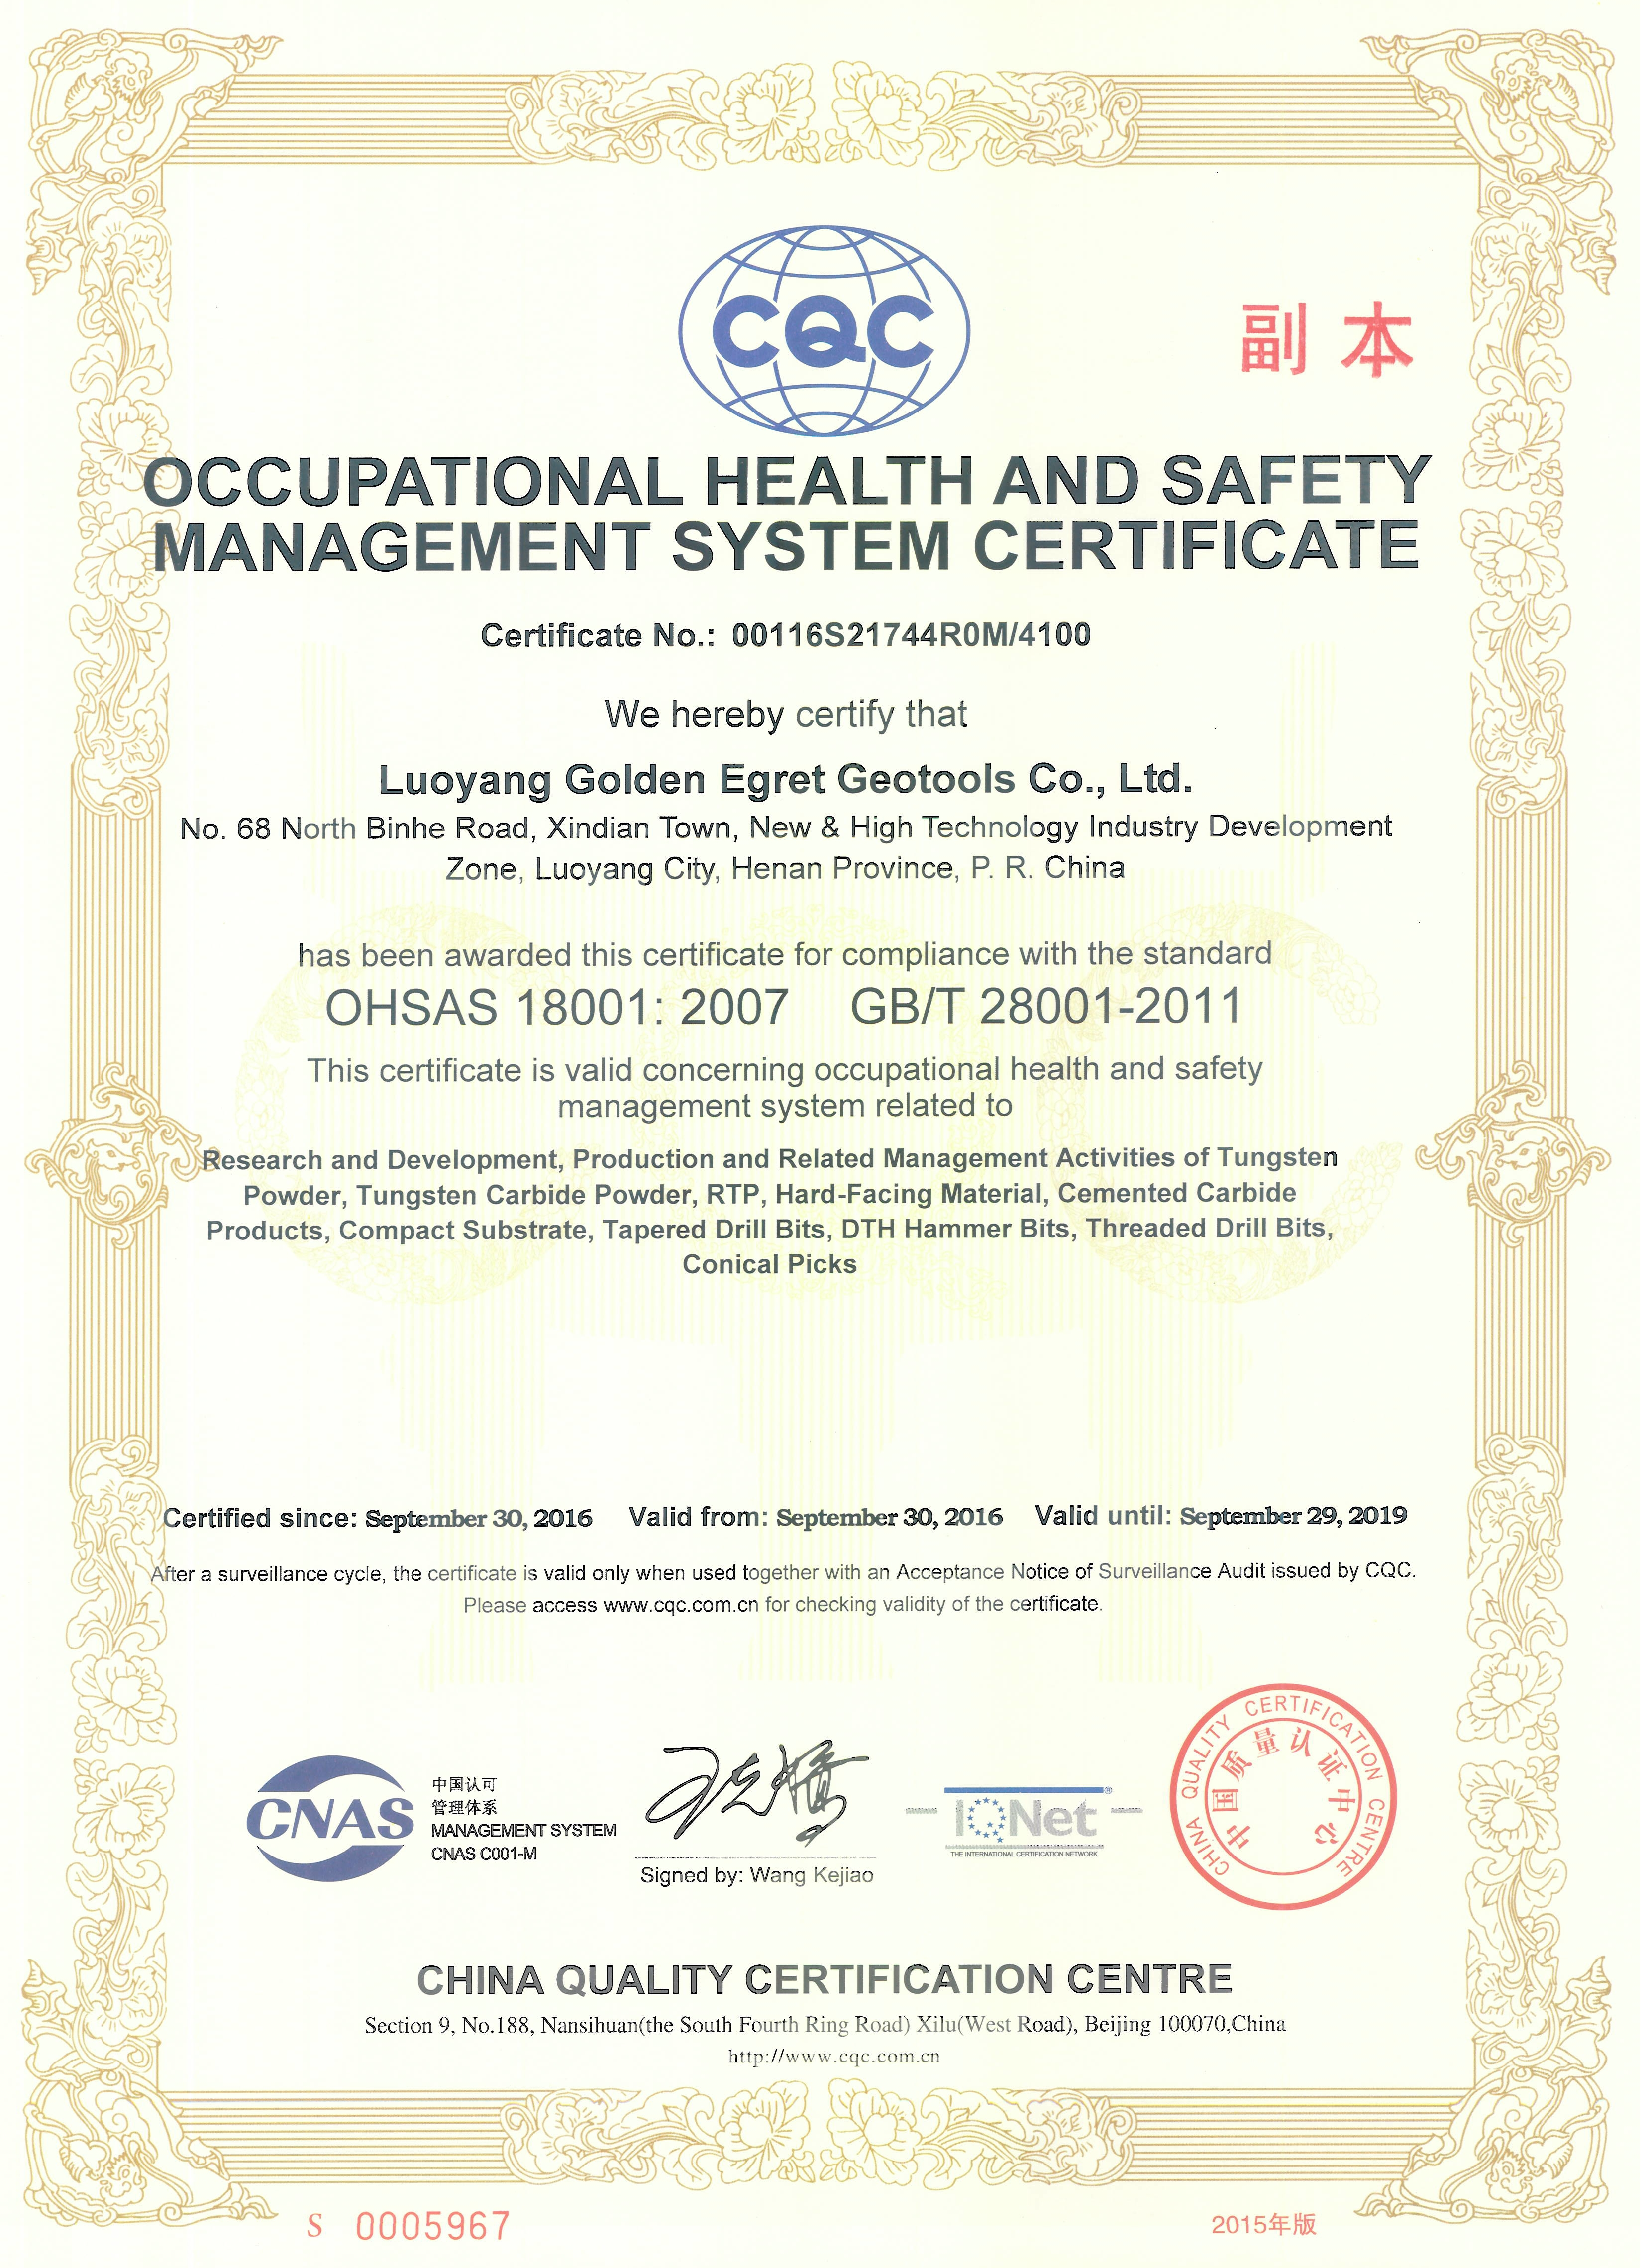 Occupational Health and Safety Management System Cetificate